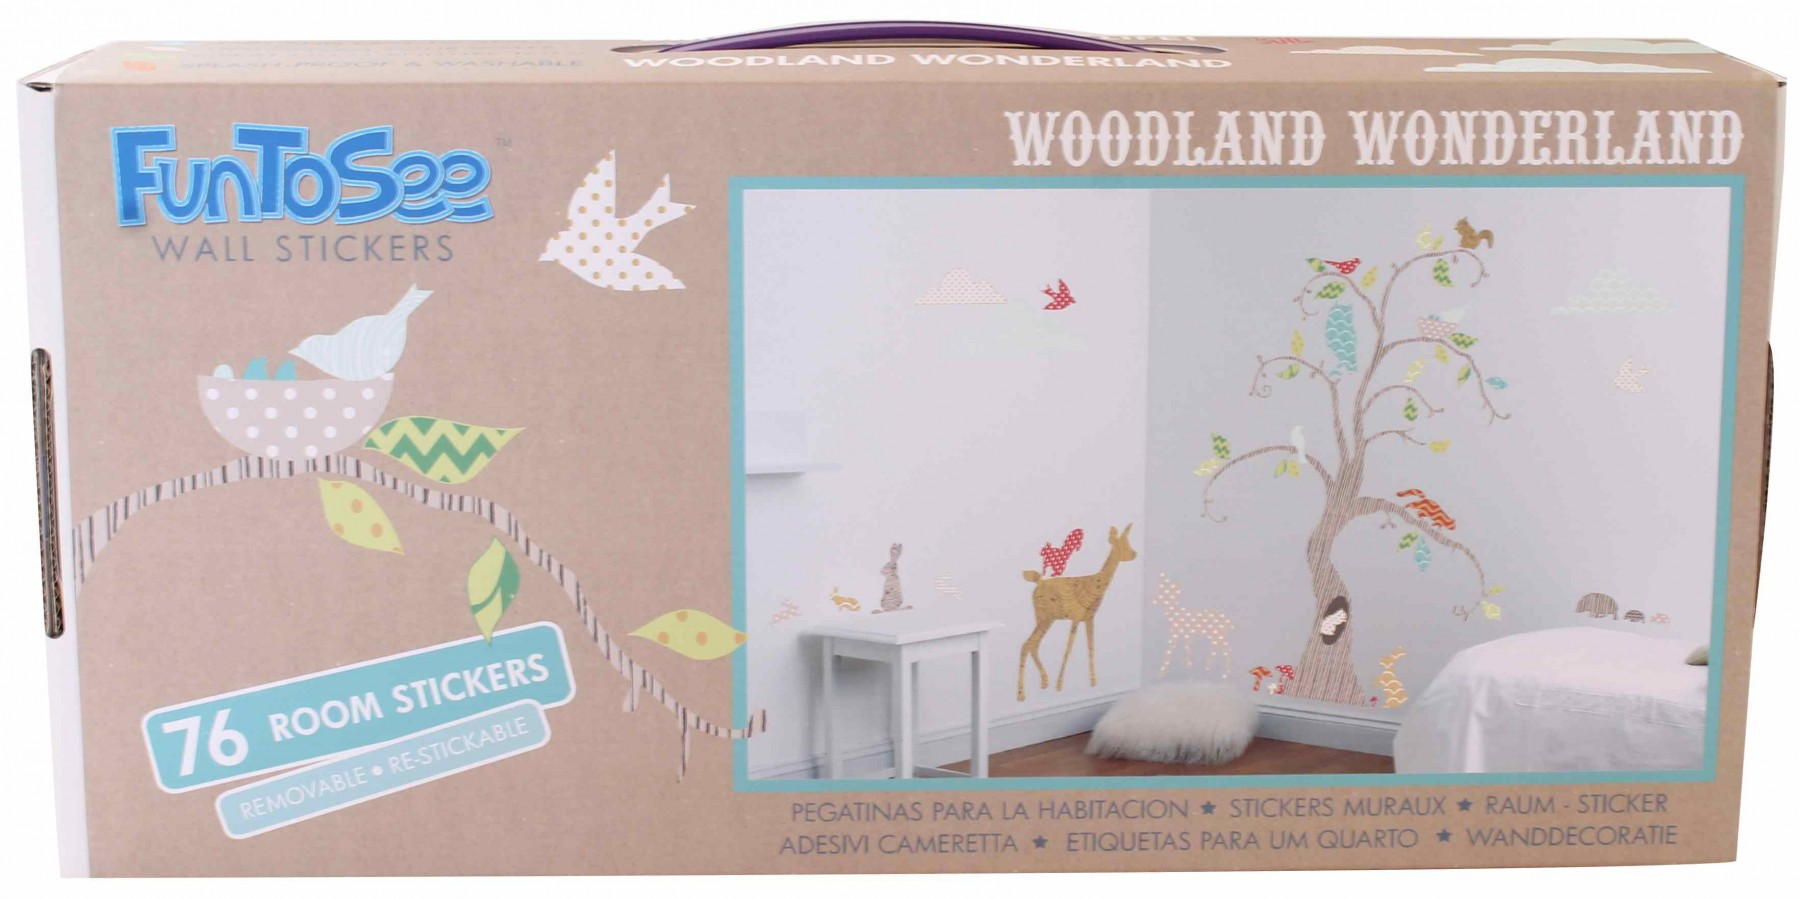 Nice Fun To See Wall Stickers With Woodland Theme Part 16